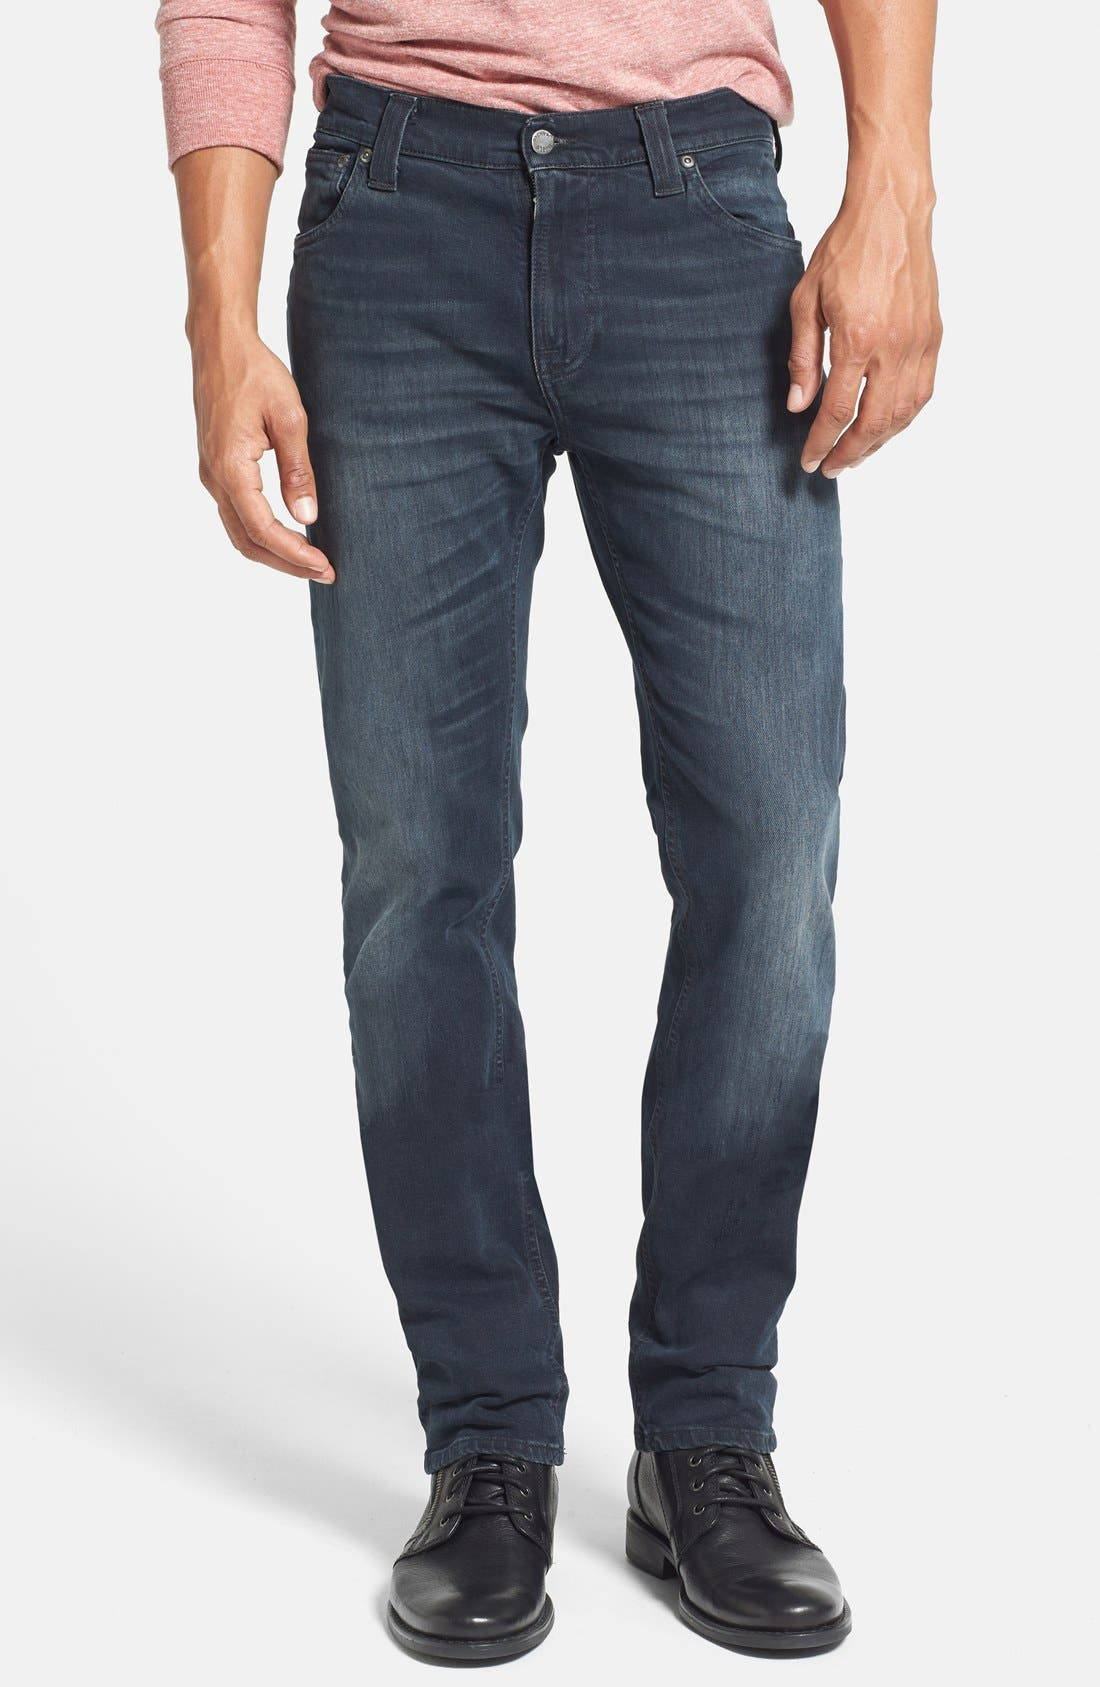 Main Image - Nudie Jeans 'Thin Finn' Skinny Fit Jeans (Organic Black Grey)